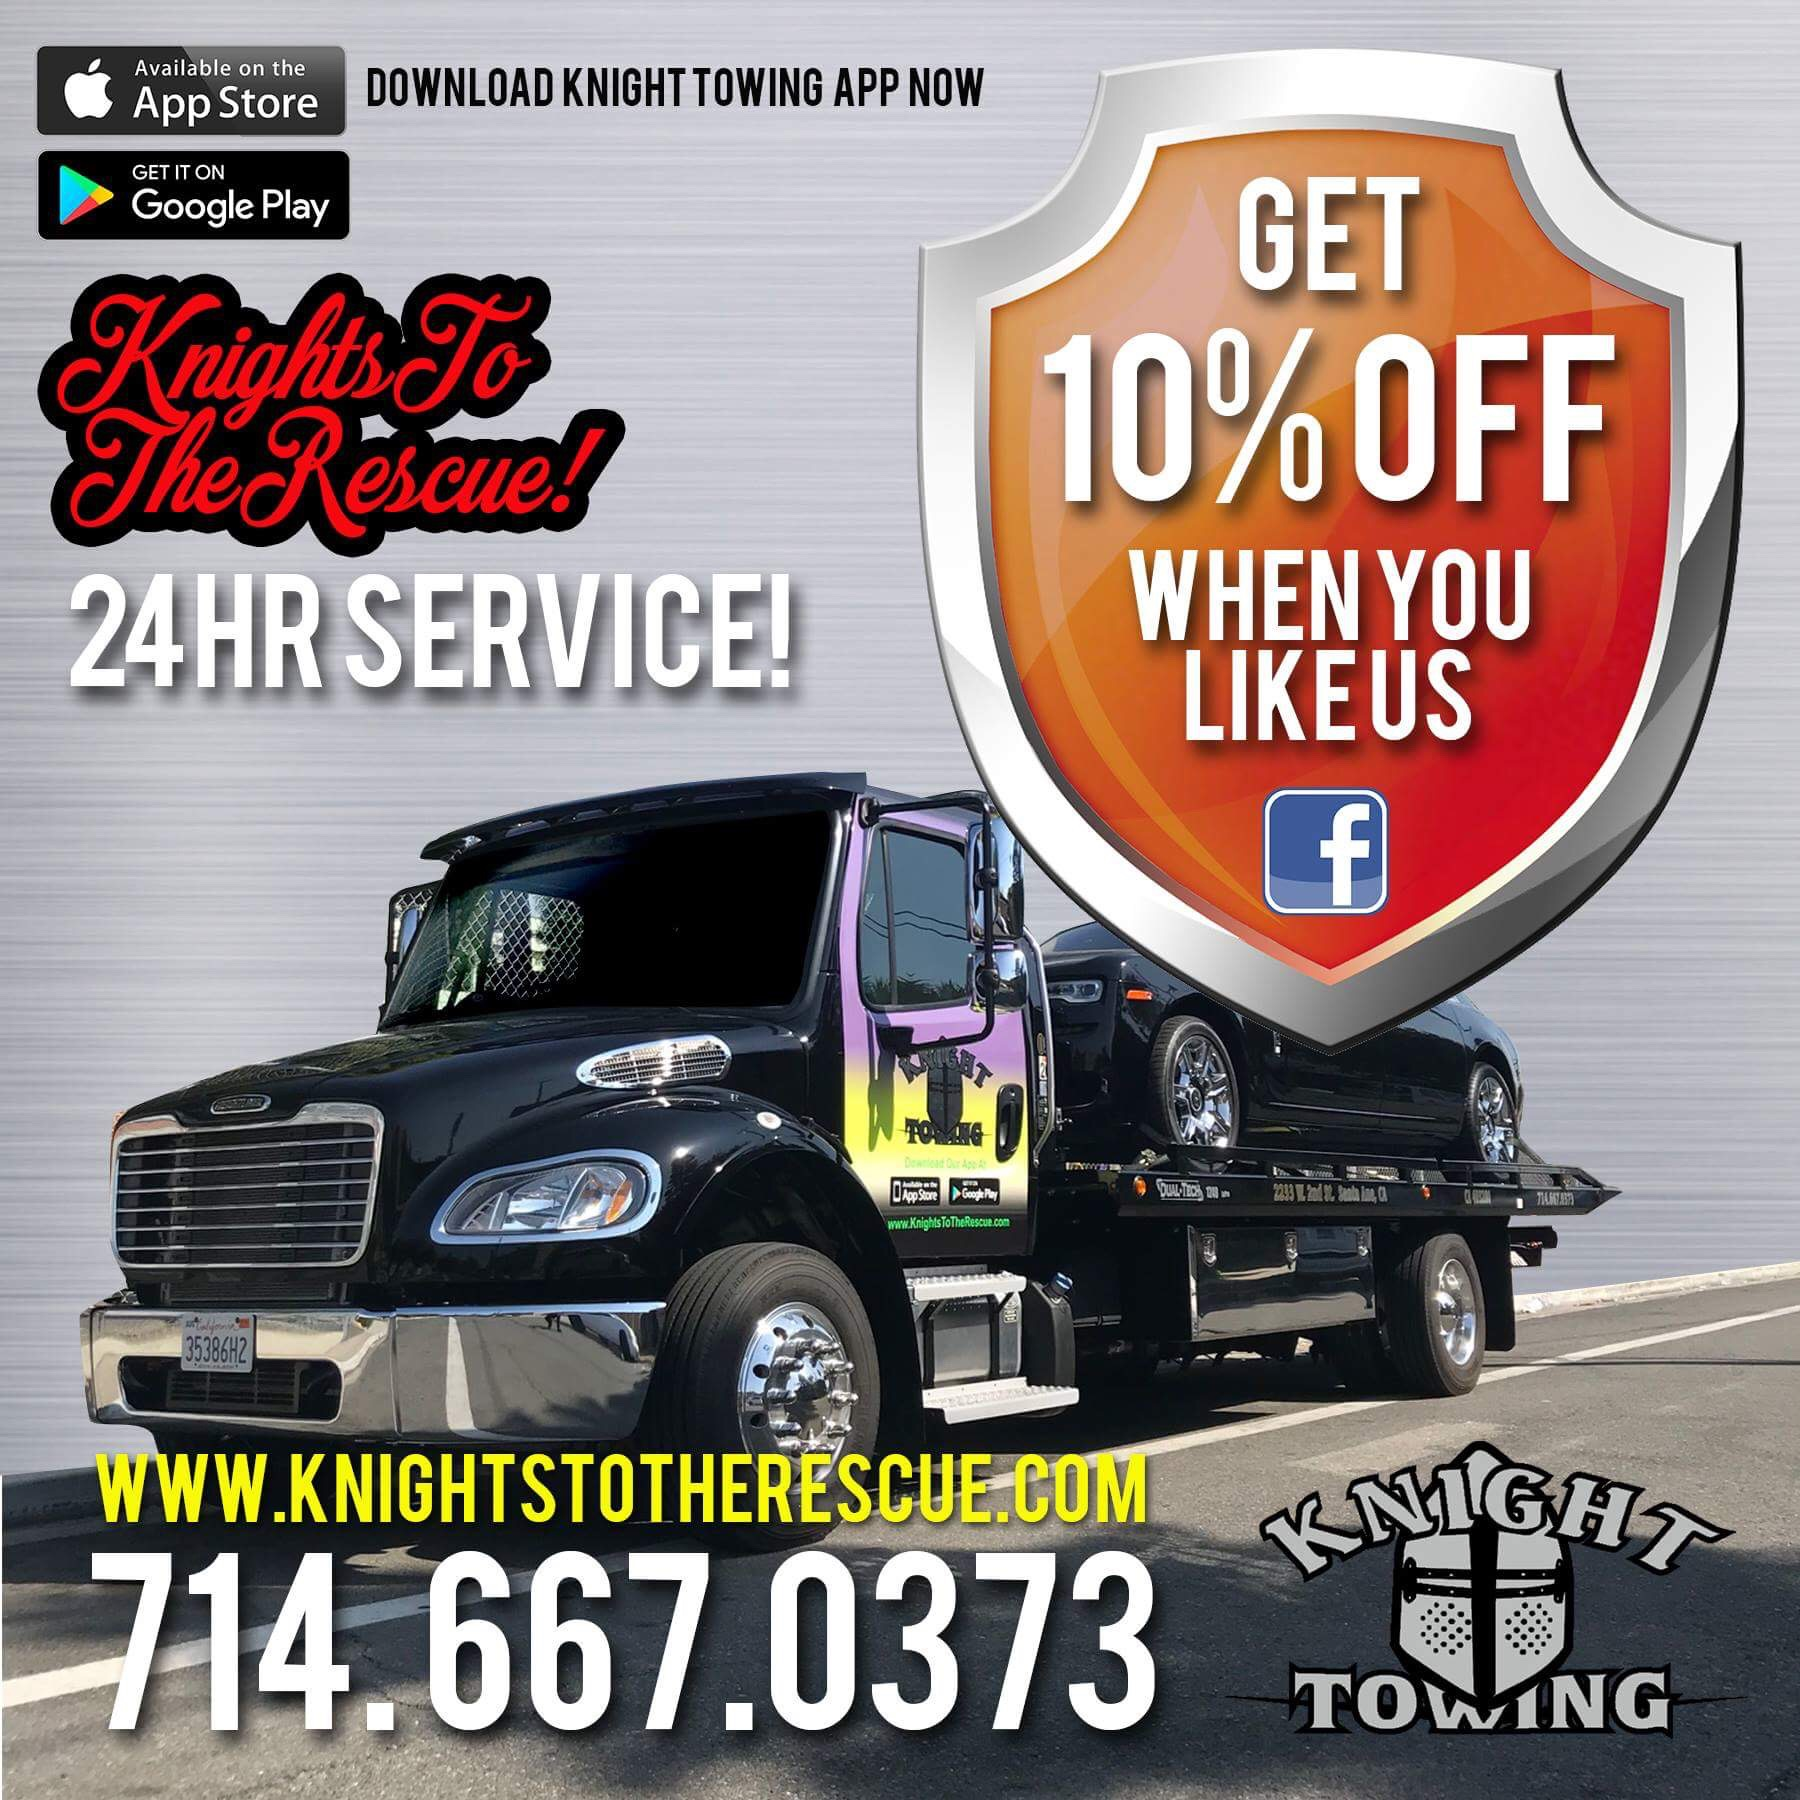 Like Knight Towing on Facebook